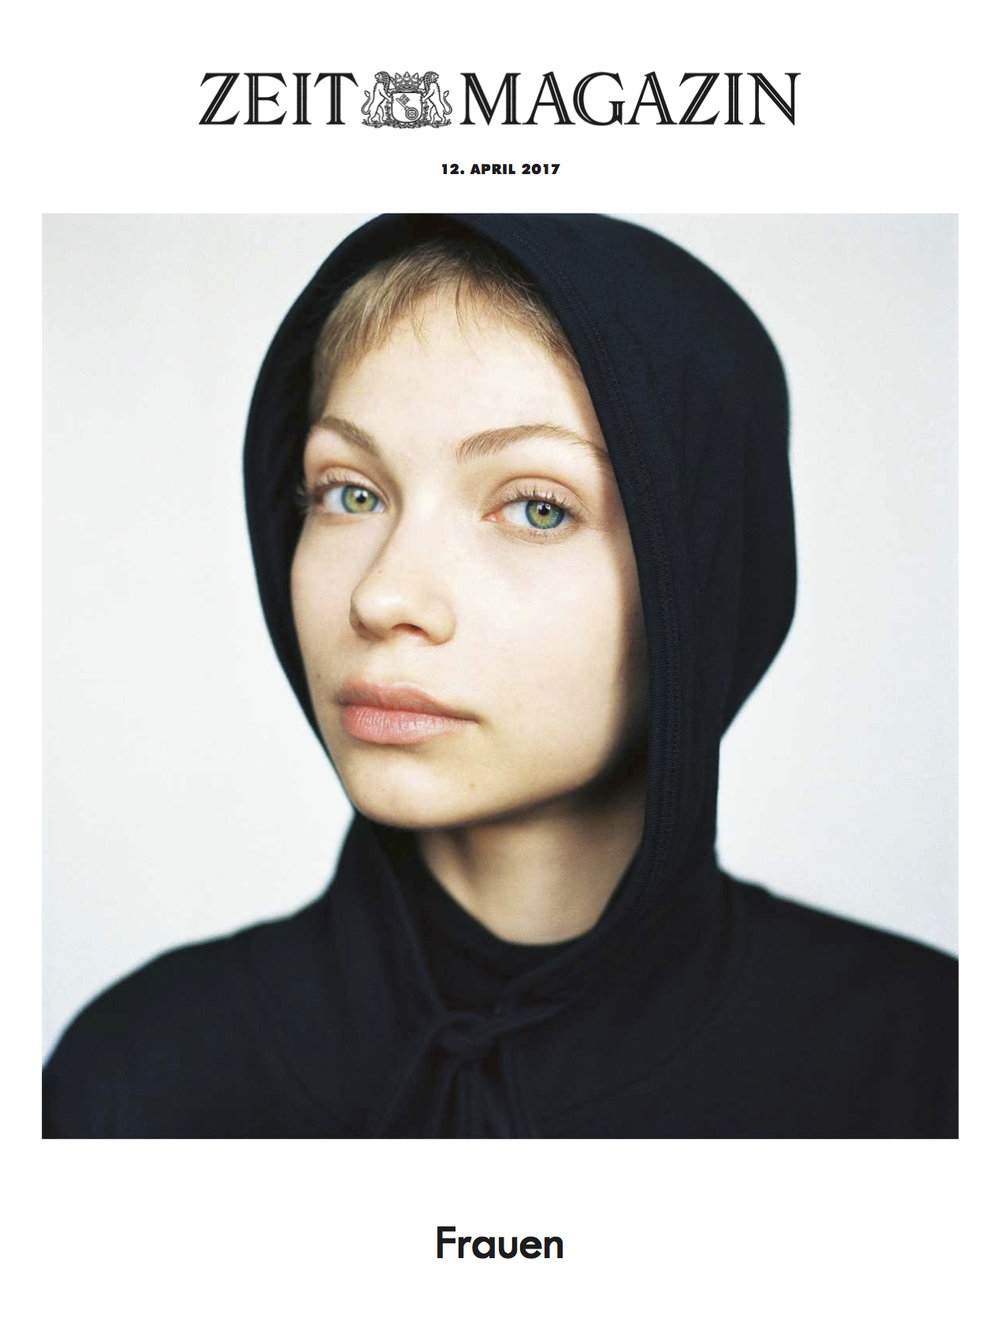 Tavi Gevinson, New York